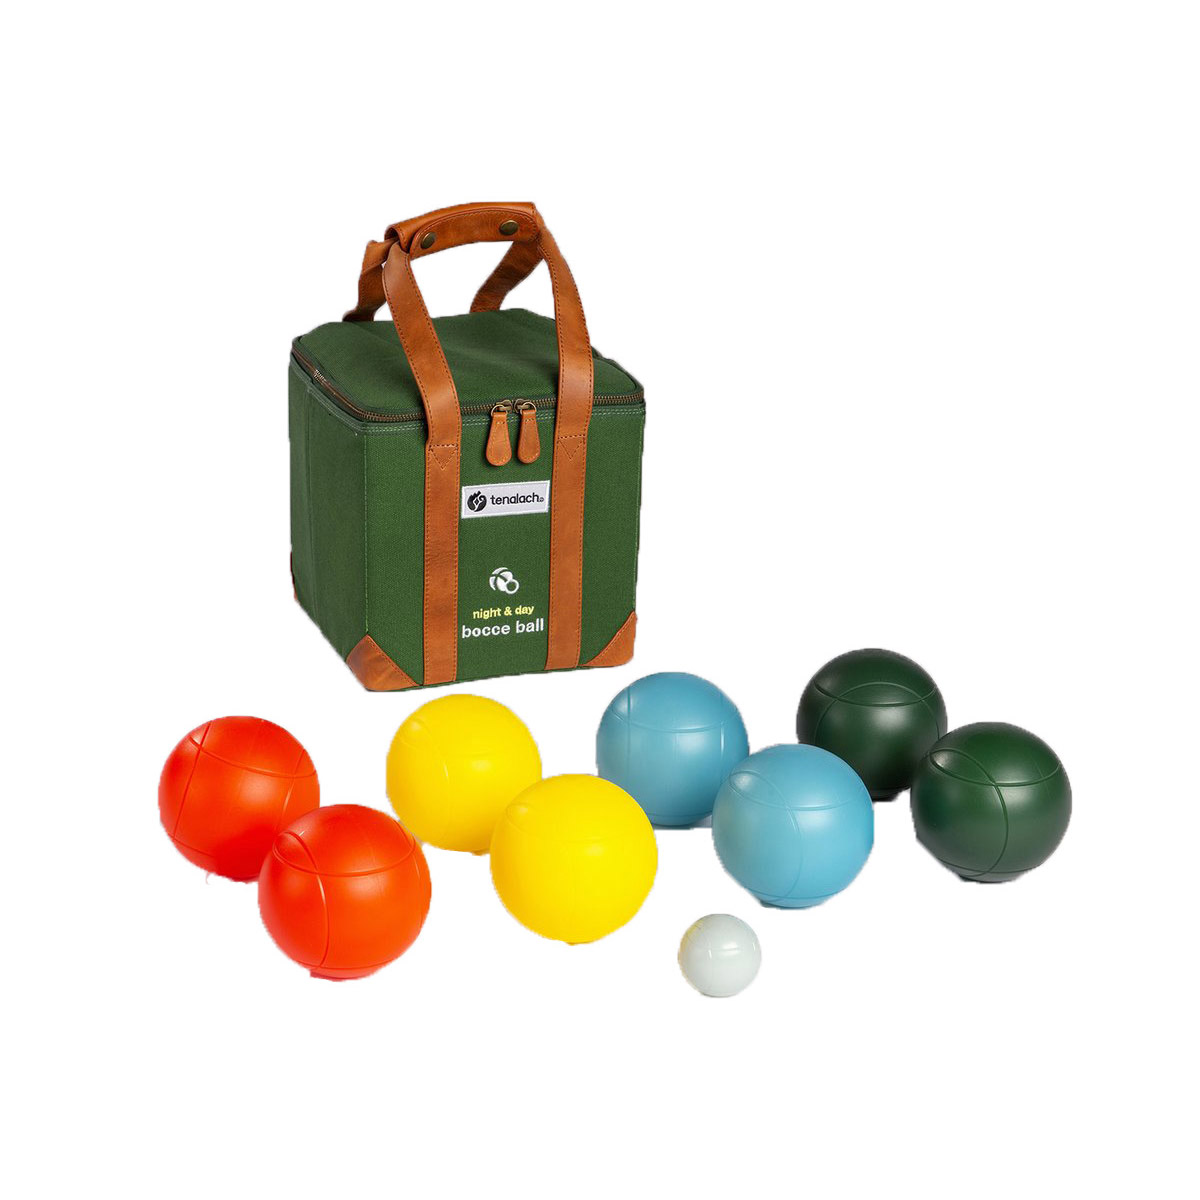 Gift ideas for dad – Tenalach Night & Day Bocce Ball